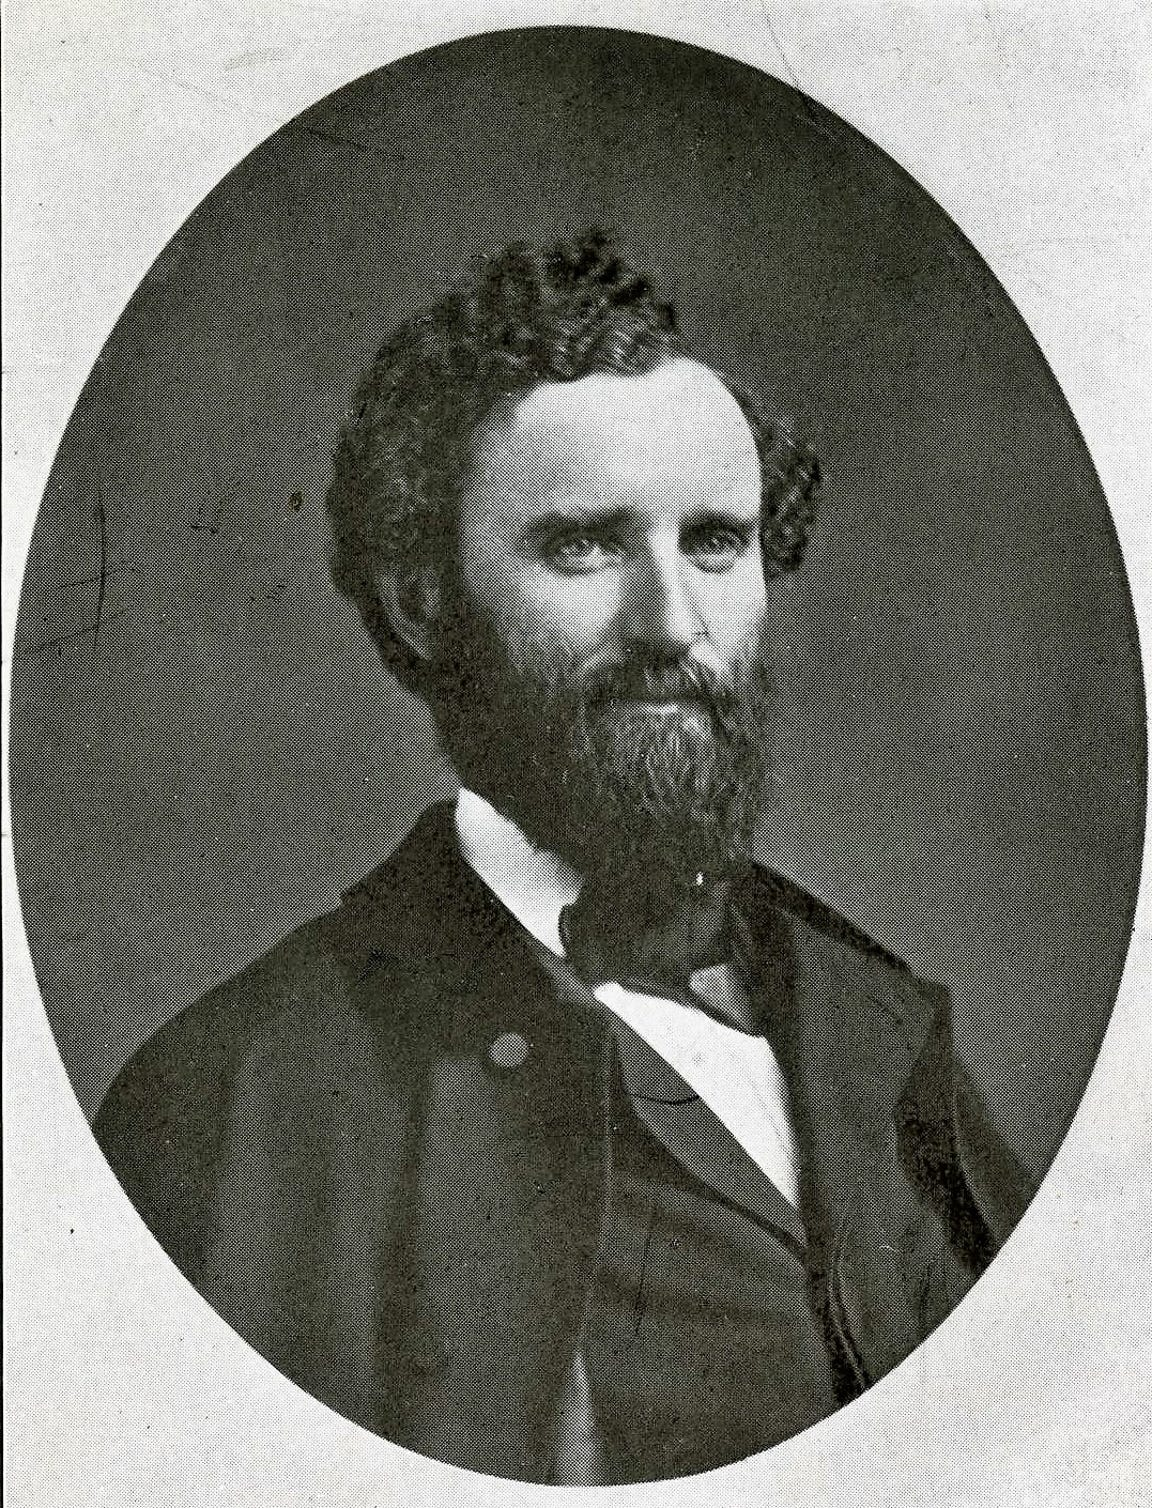 James B. Simmons